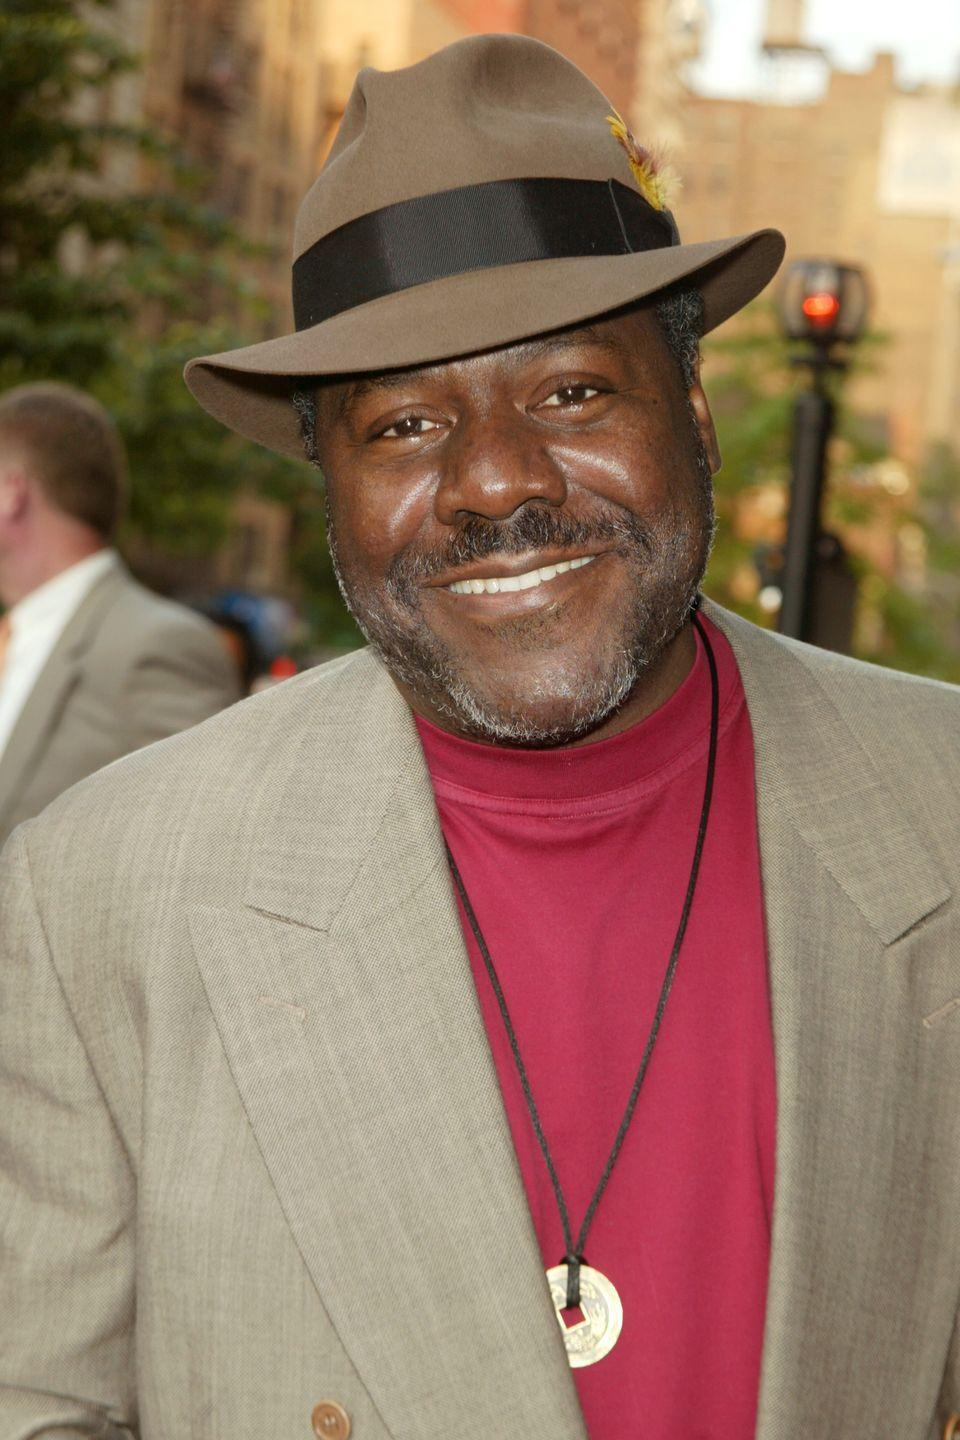 <p>Faison's portrayal of Ervin Burrell, a careerist who effectively blackmailed his subordinates to maintain authority in the Baltimore Police Department, was impressive. But Faison was a star in his own right before <em>The Wire</em>, earning a Tony nomination for starring alongside James Earl Jones in <em>Fences</em> on Broadway and appearing in numerous films, including the Hannibal Lecter franchise, <em>The Thomas Crown Affair,</em> and <em>White Chicks</em>.</p>